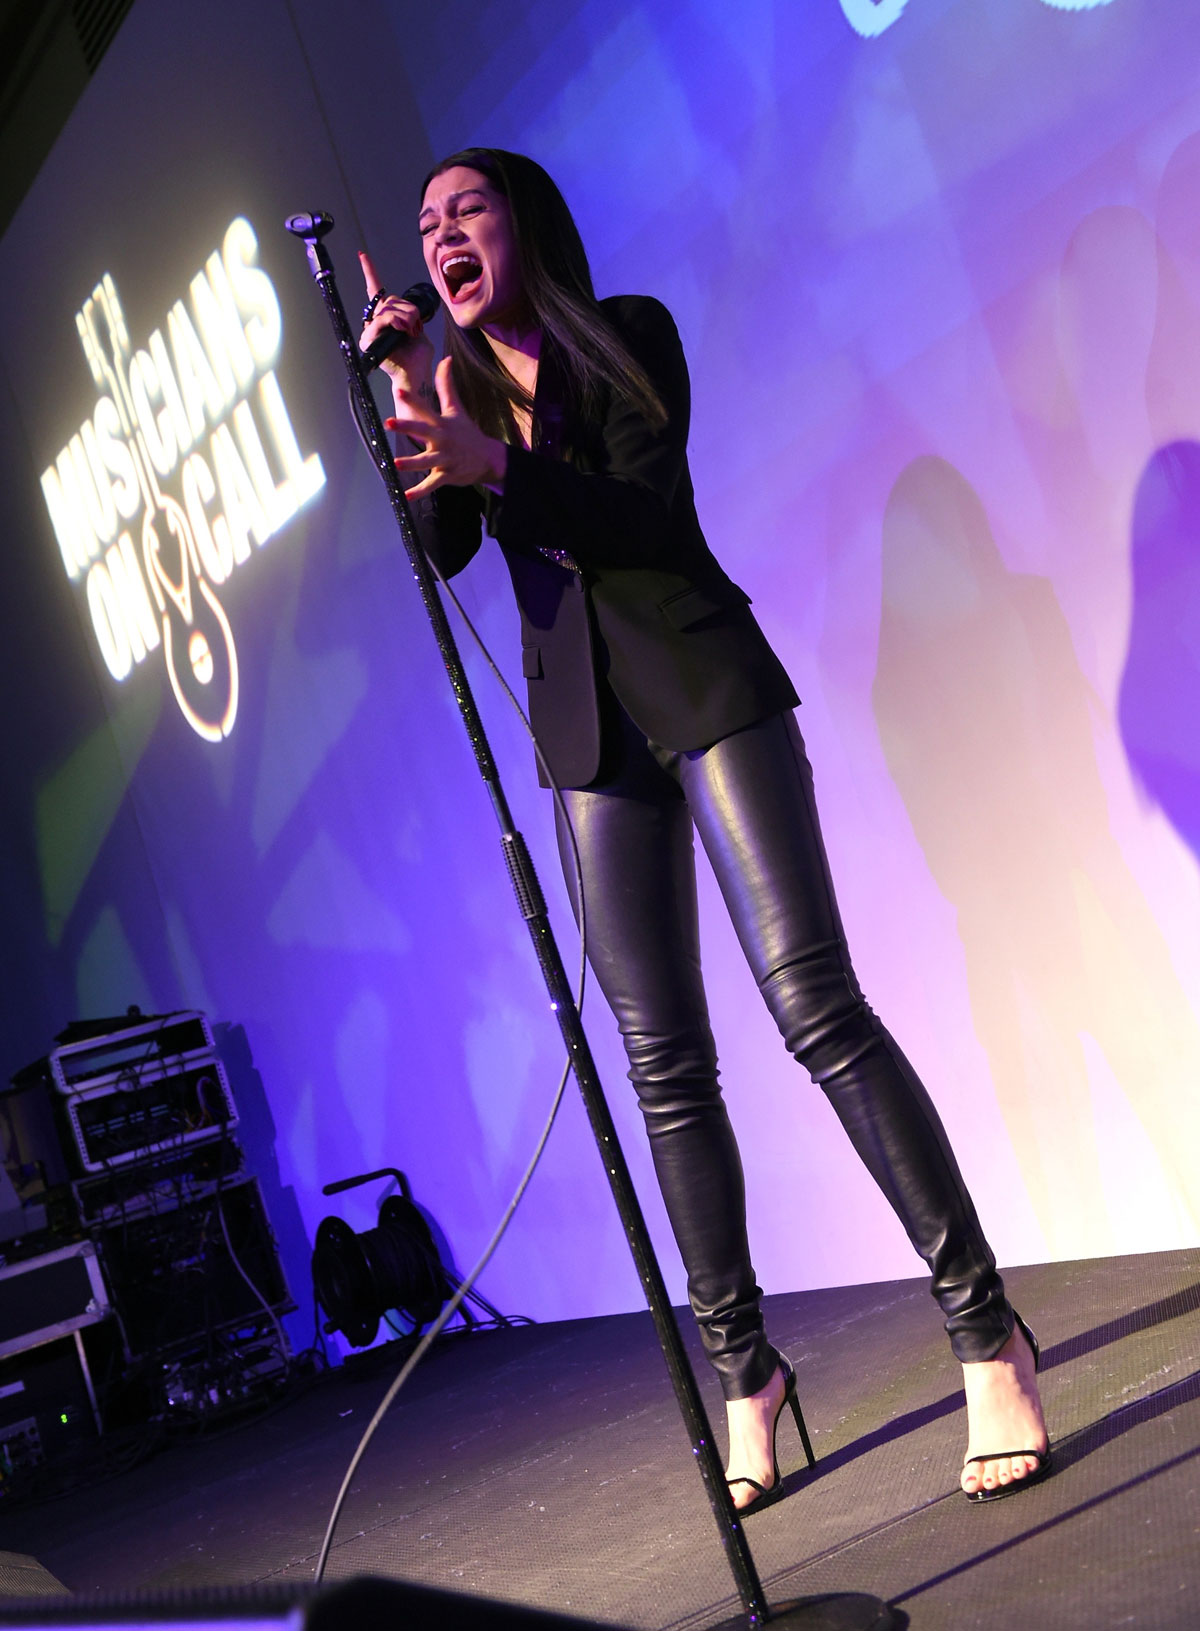 Jessie J attends Musicians on Call's 15th Anniversary Celebration